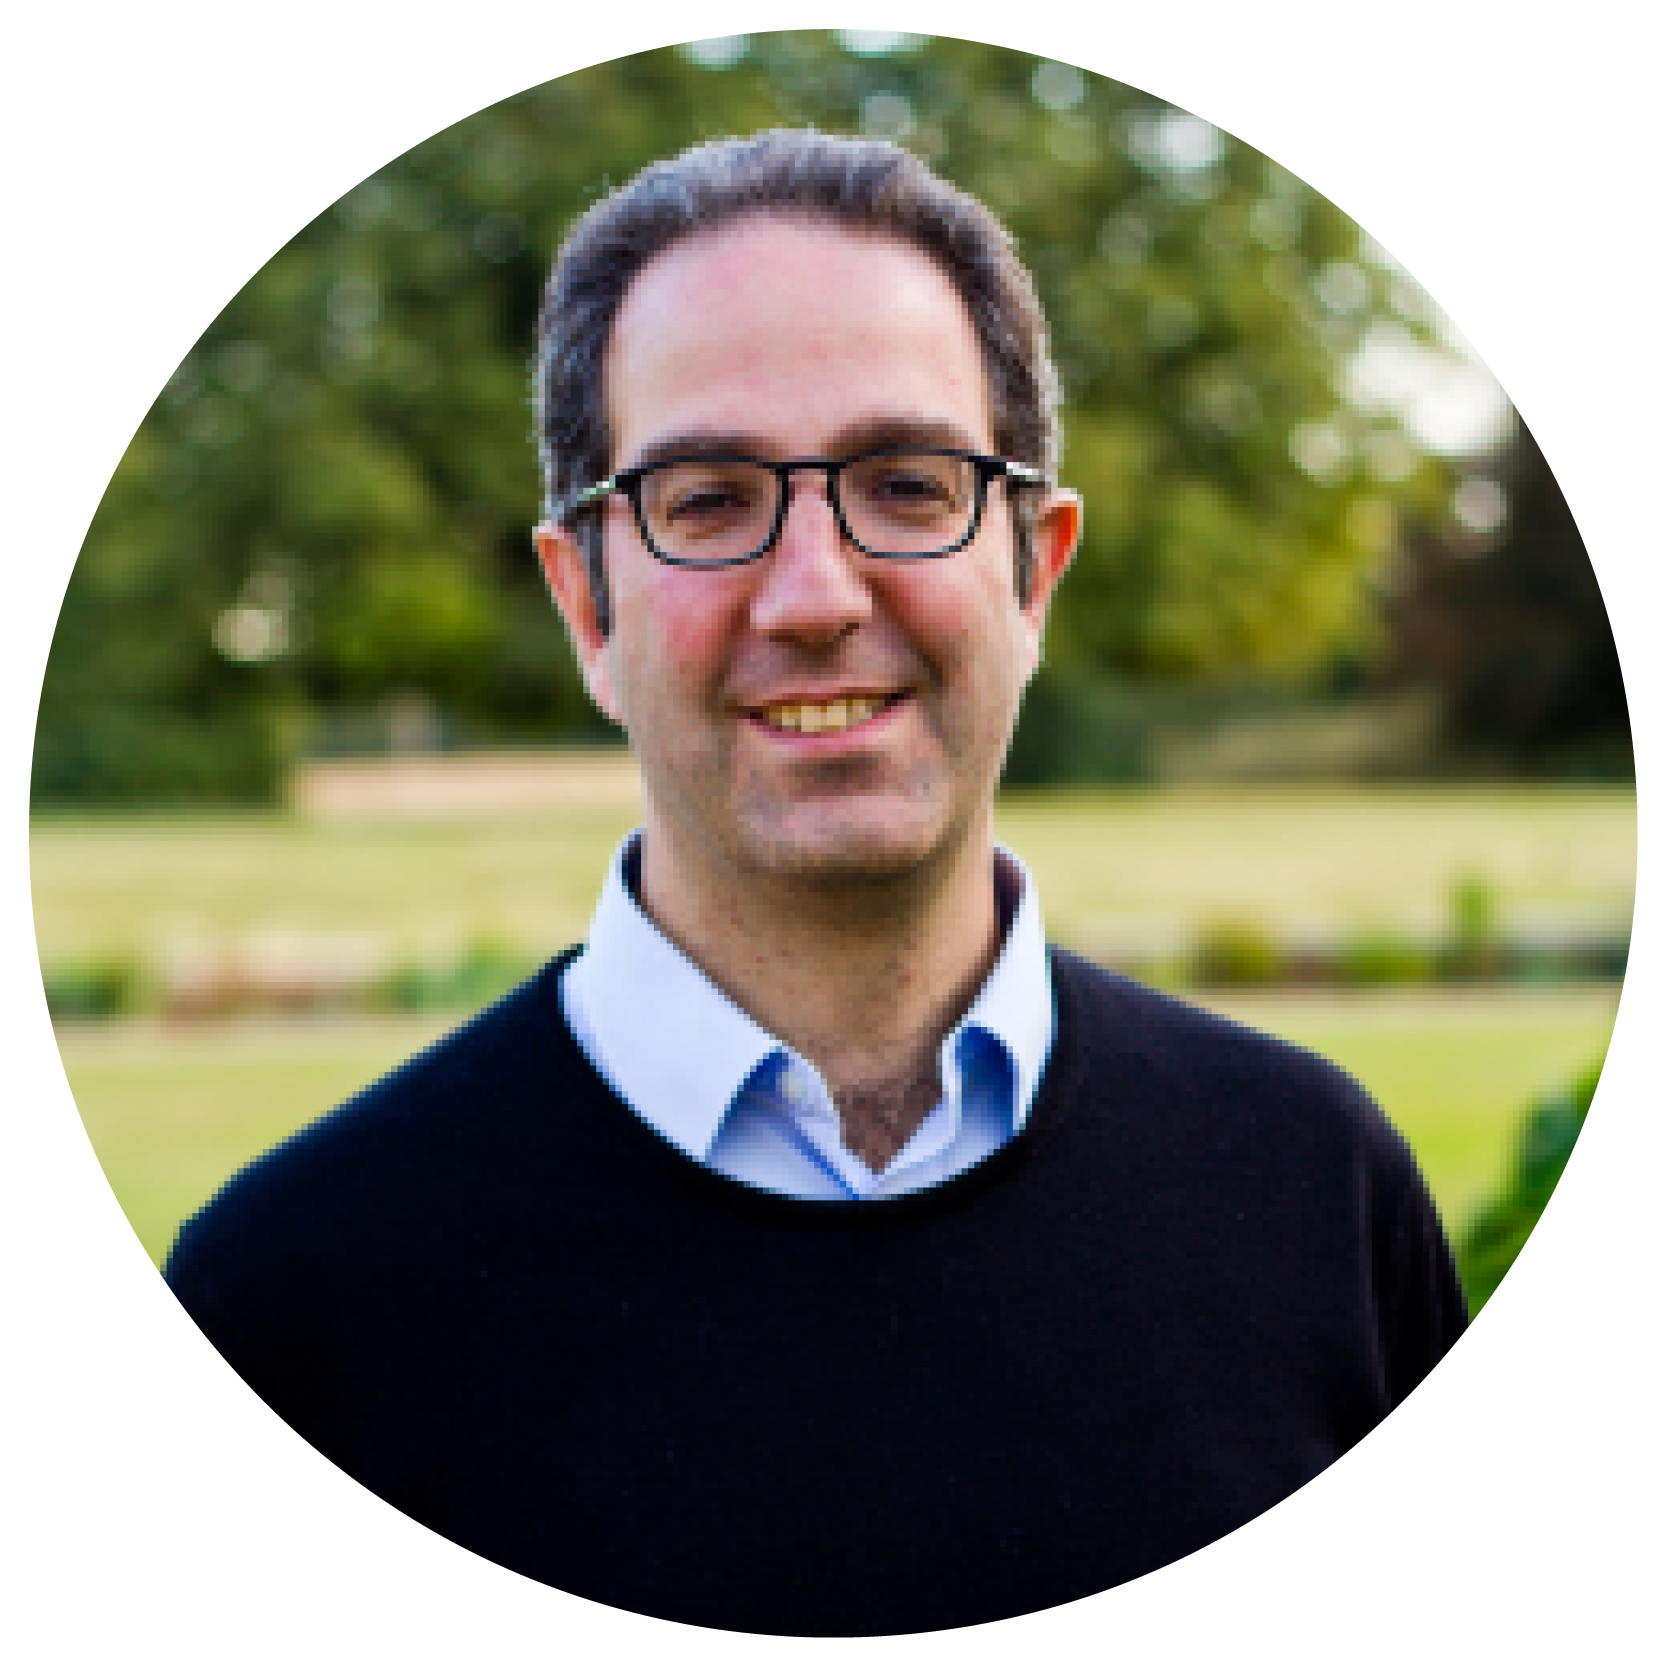 Jonathan Cohen_ - Jonathan Cohen has been working in peacebuilding for the past 25 years. As the director, his work focused on dialogue, confidence-building and mediation support he has supported initiatives in the Caucasus, Kashmir, Colombia, the Phlippines and Sub-Saharan Africa